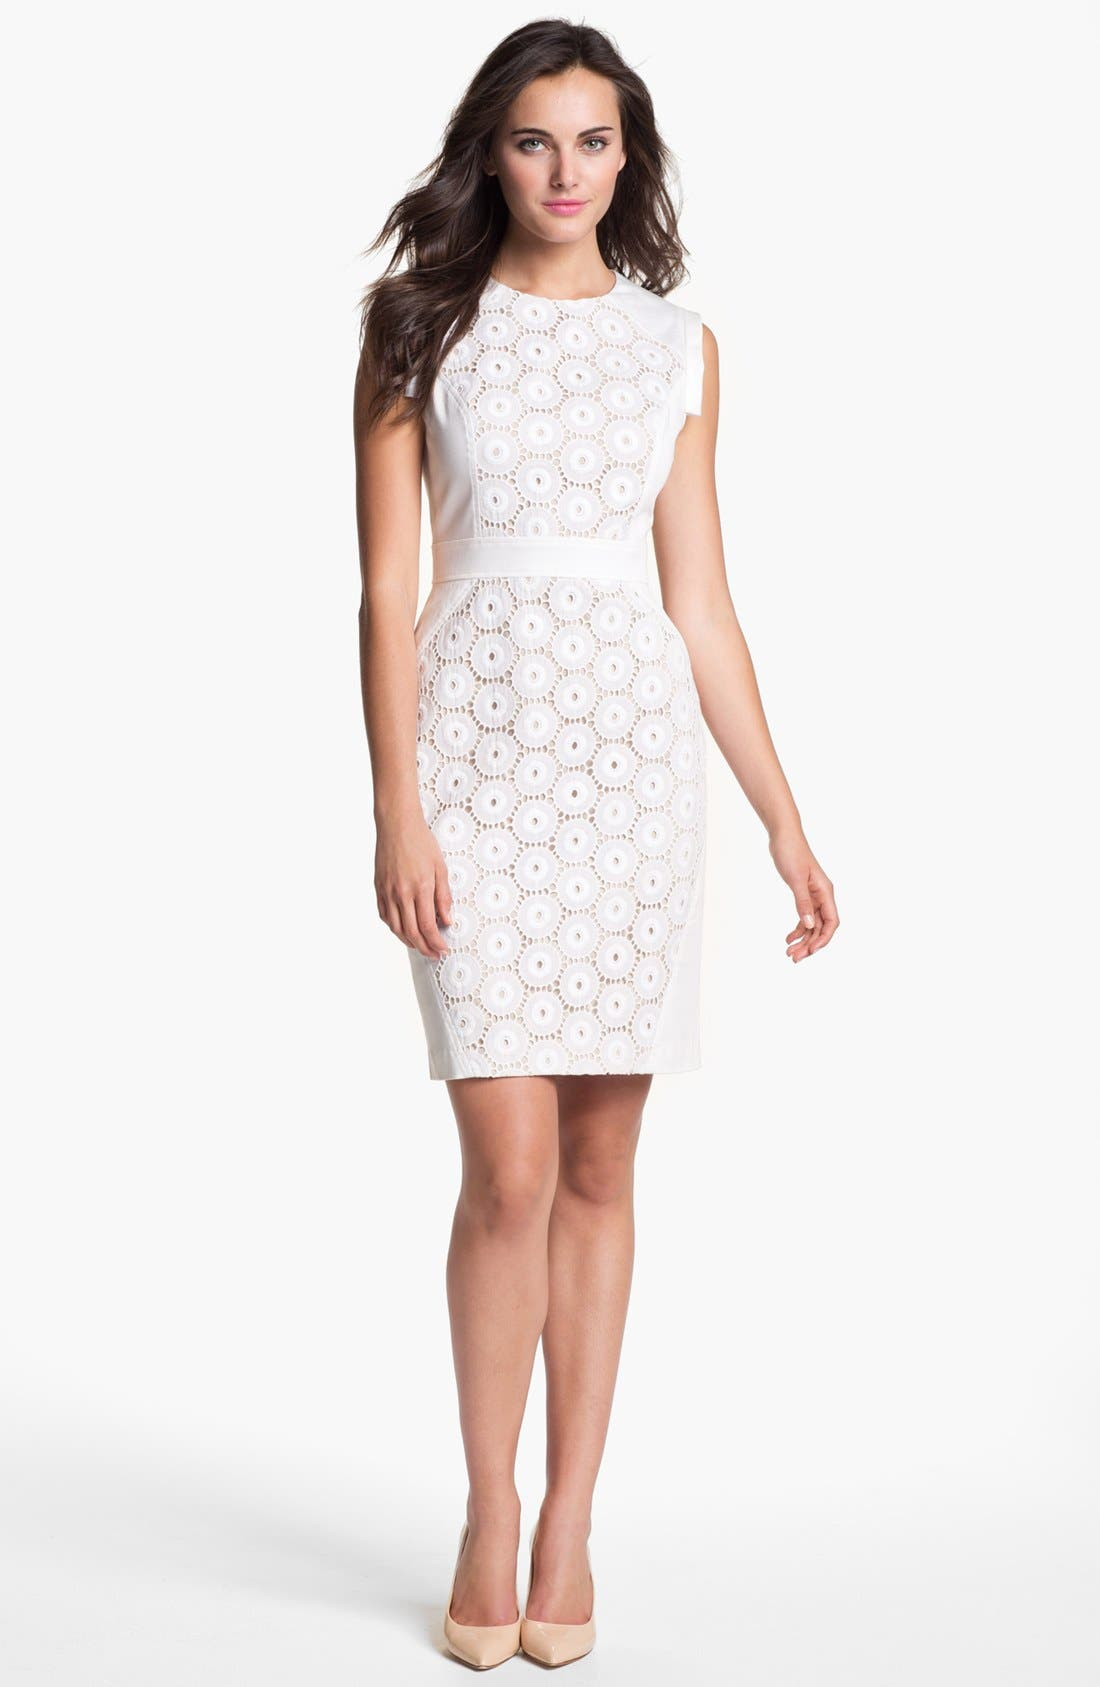 Alternate Image 1 Selected - Adrianna Papell Mixed Lace Cotton Sheath Dress (Regular & Petite)